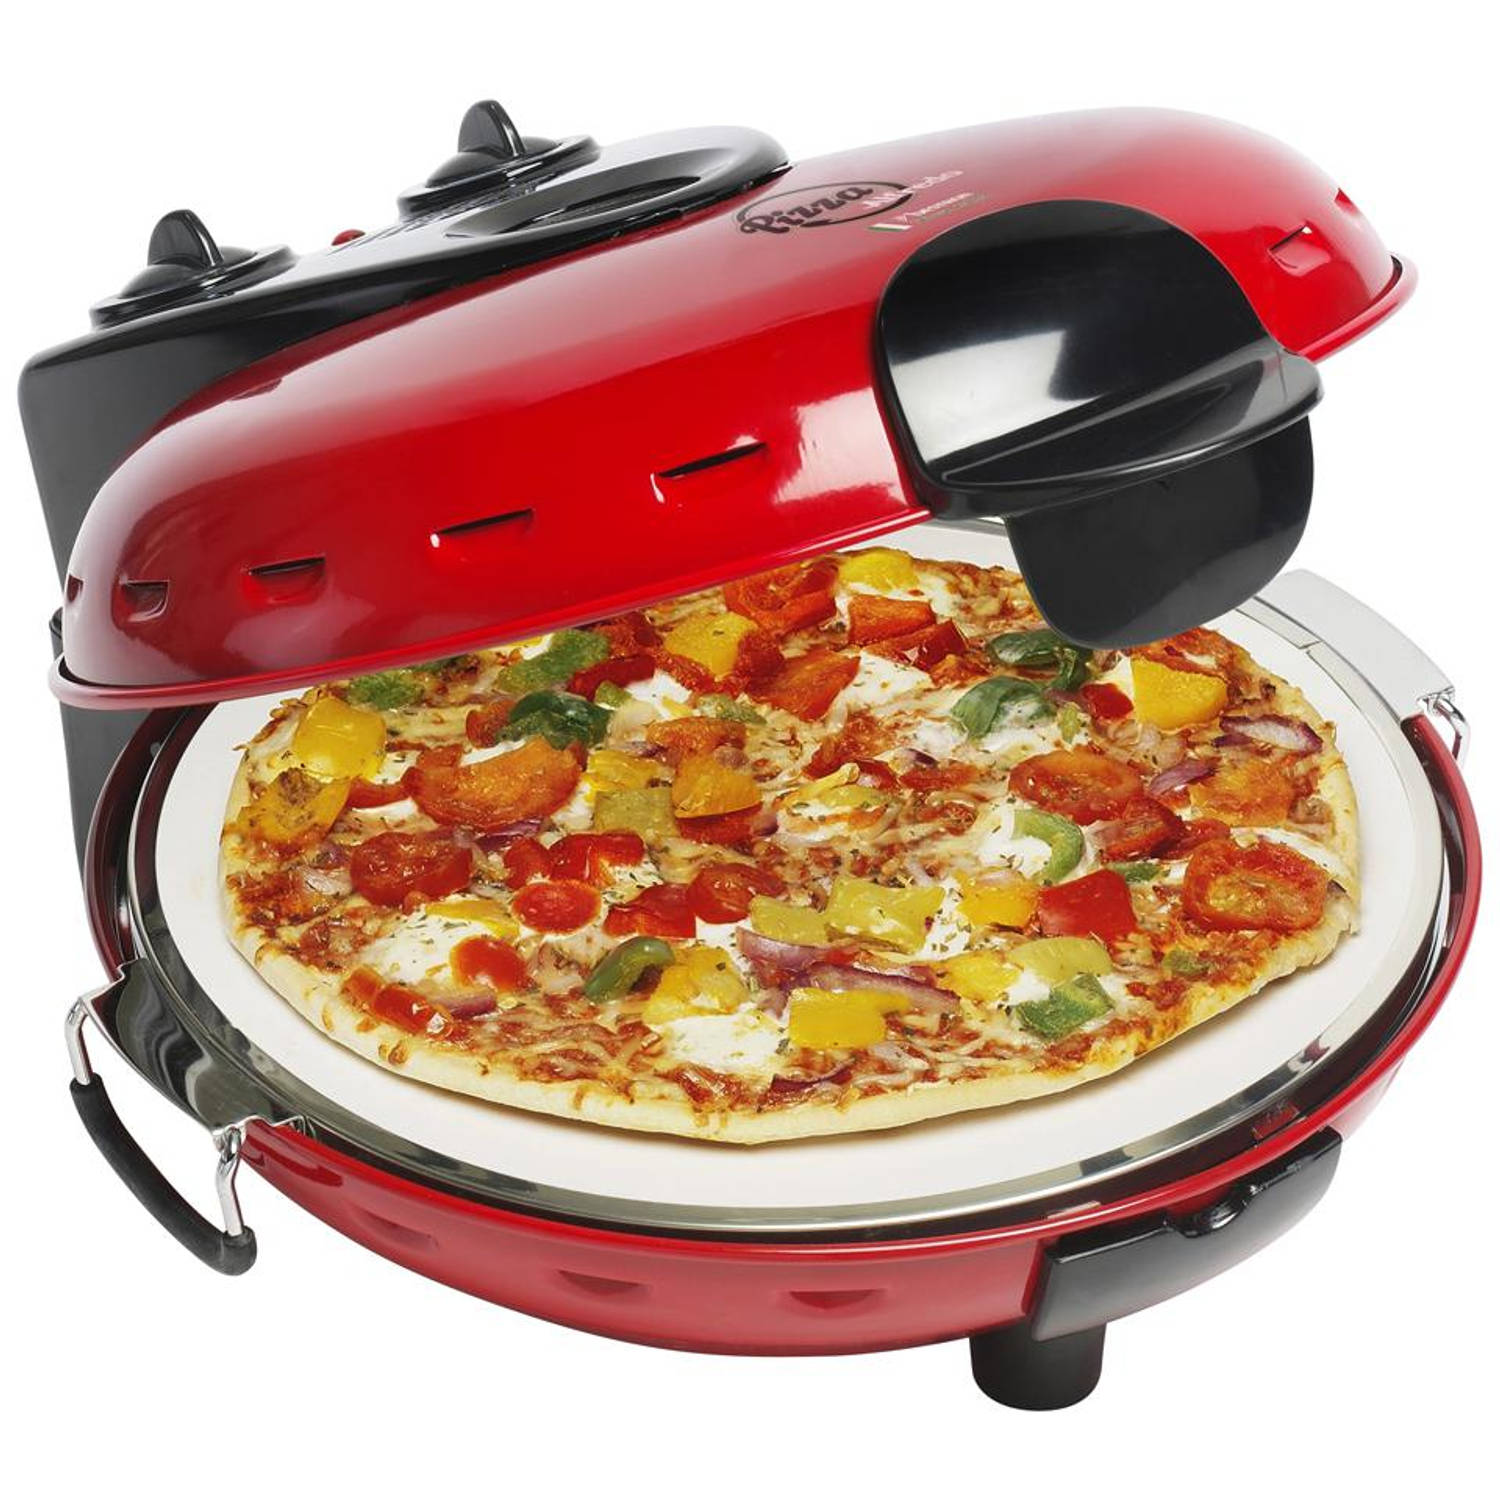 Bestron pizza steenoven DLD9070 - rood